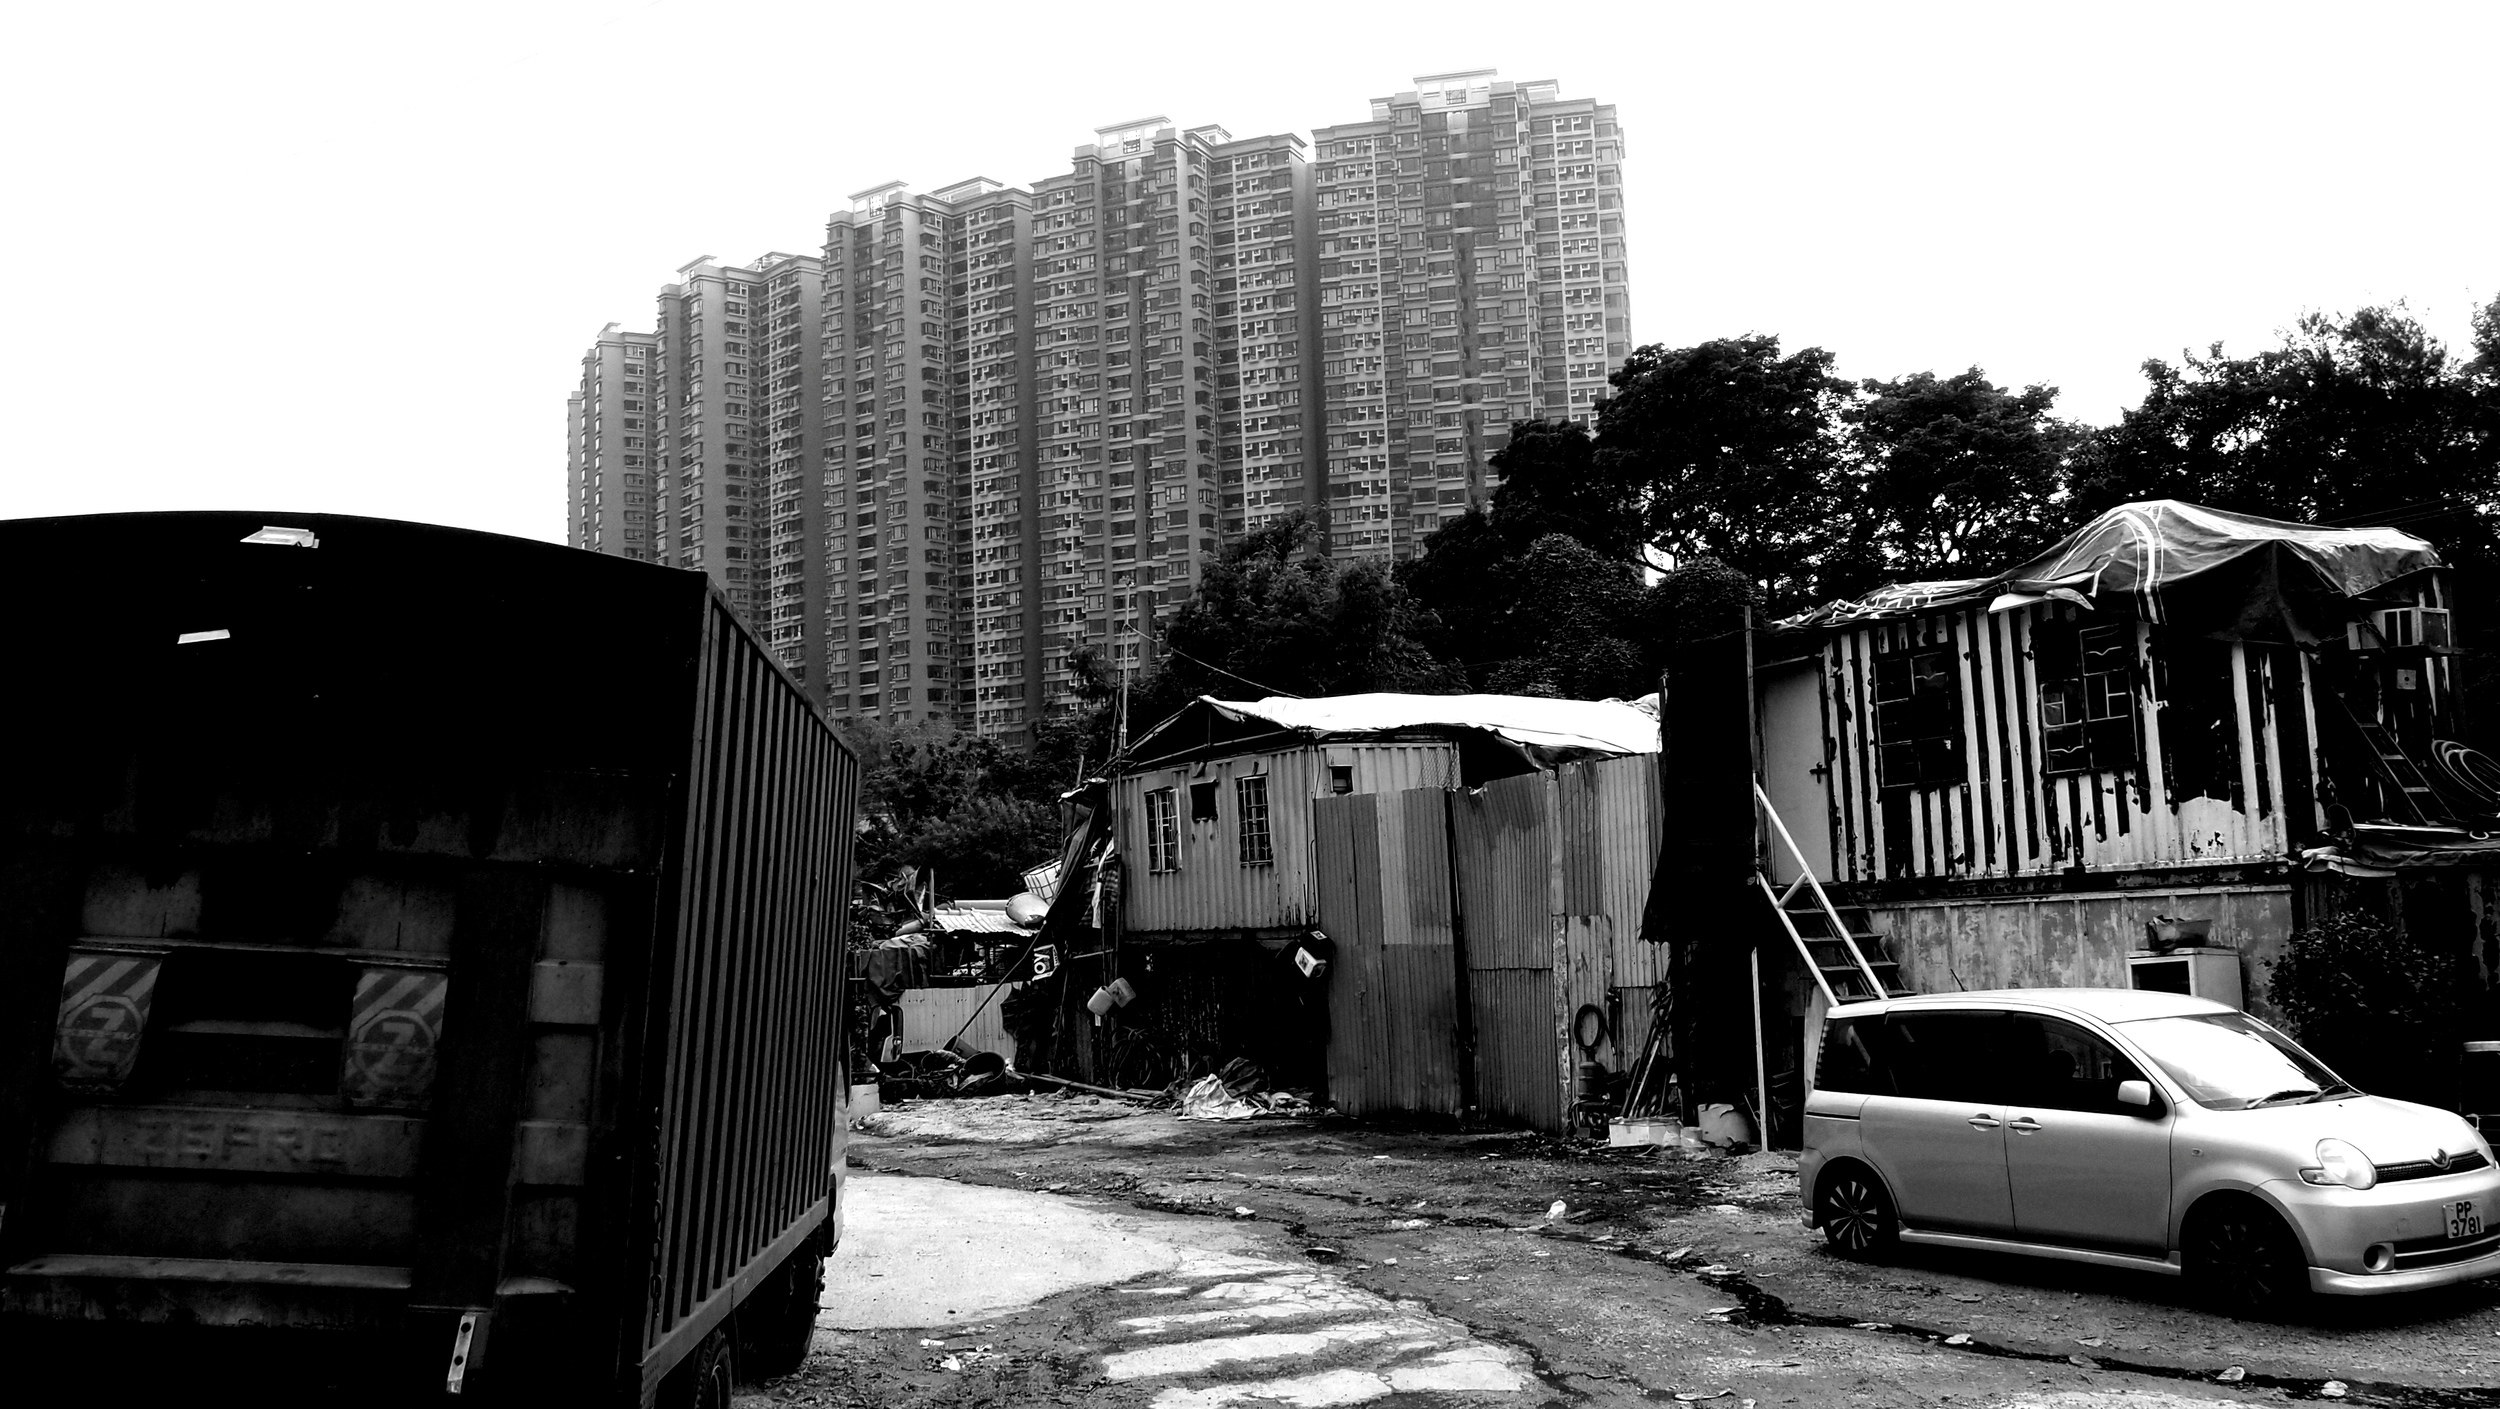 Message to our Government, our housing shortage can be rectified in 2 years by building apartment blocks on the hundreds of unsightly wasteland scrapyards dotted around the New Territories.